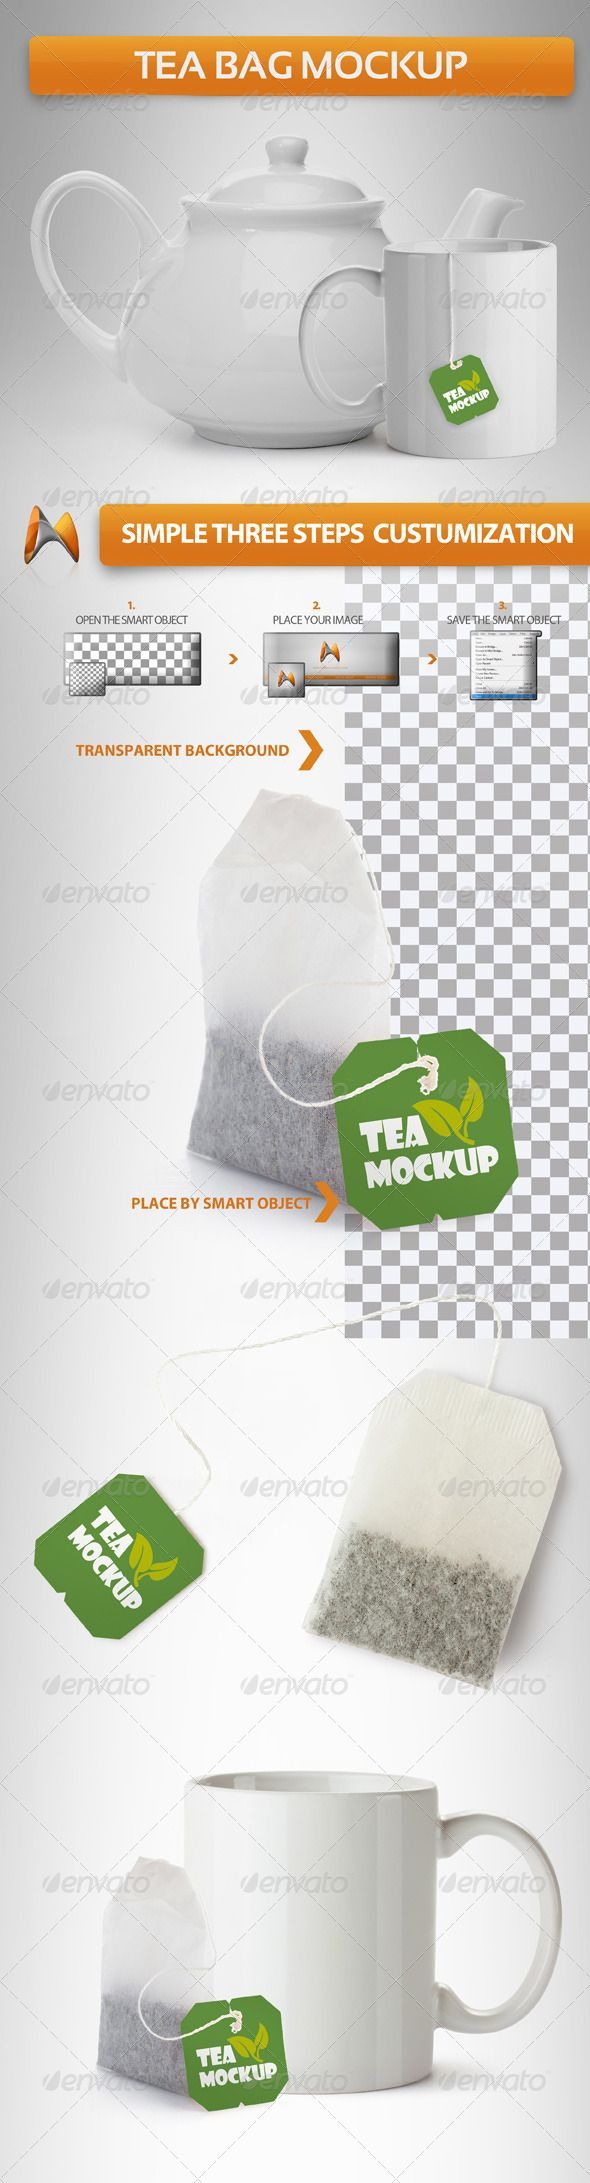 Download Tea Bag Mockup Bag Mockup Tea Bag Packaging Mockup